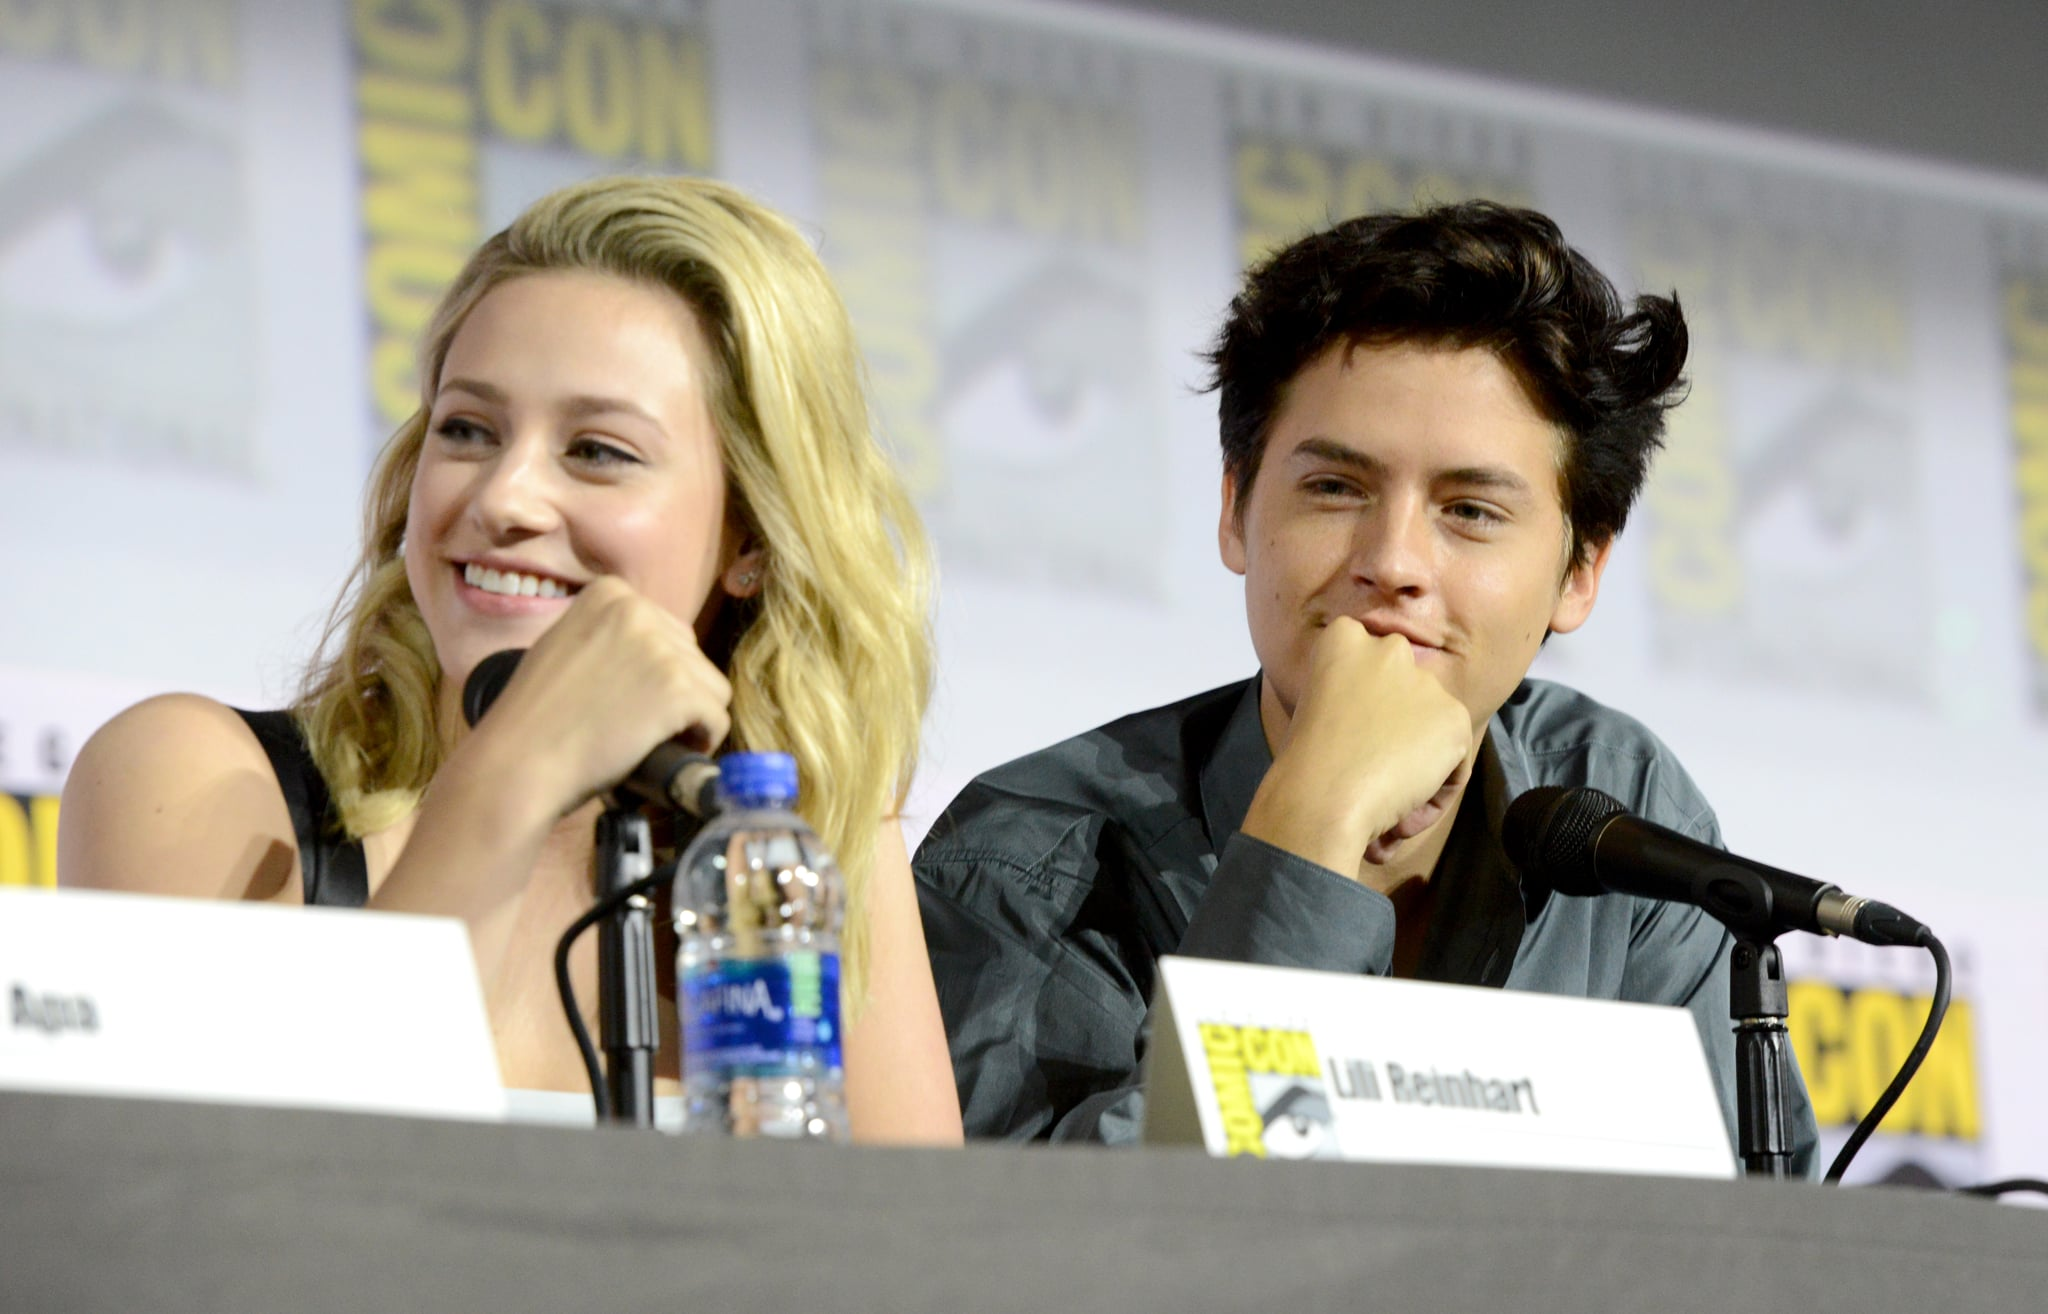 Did Cole Sprouse and Lili Reinhart Break Up? | POPSUGAR Celebrity UK